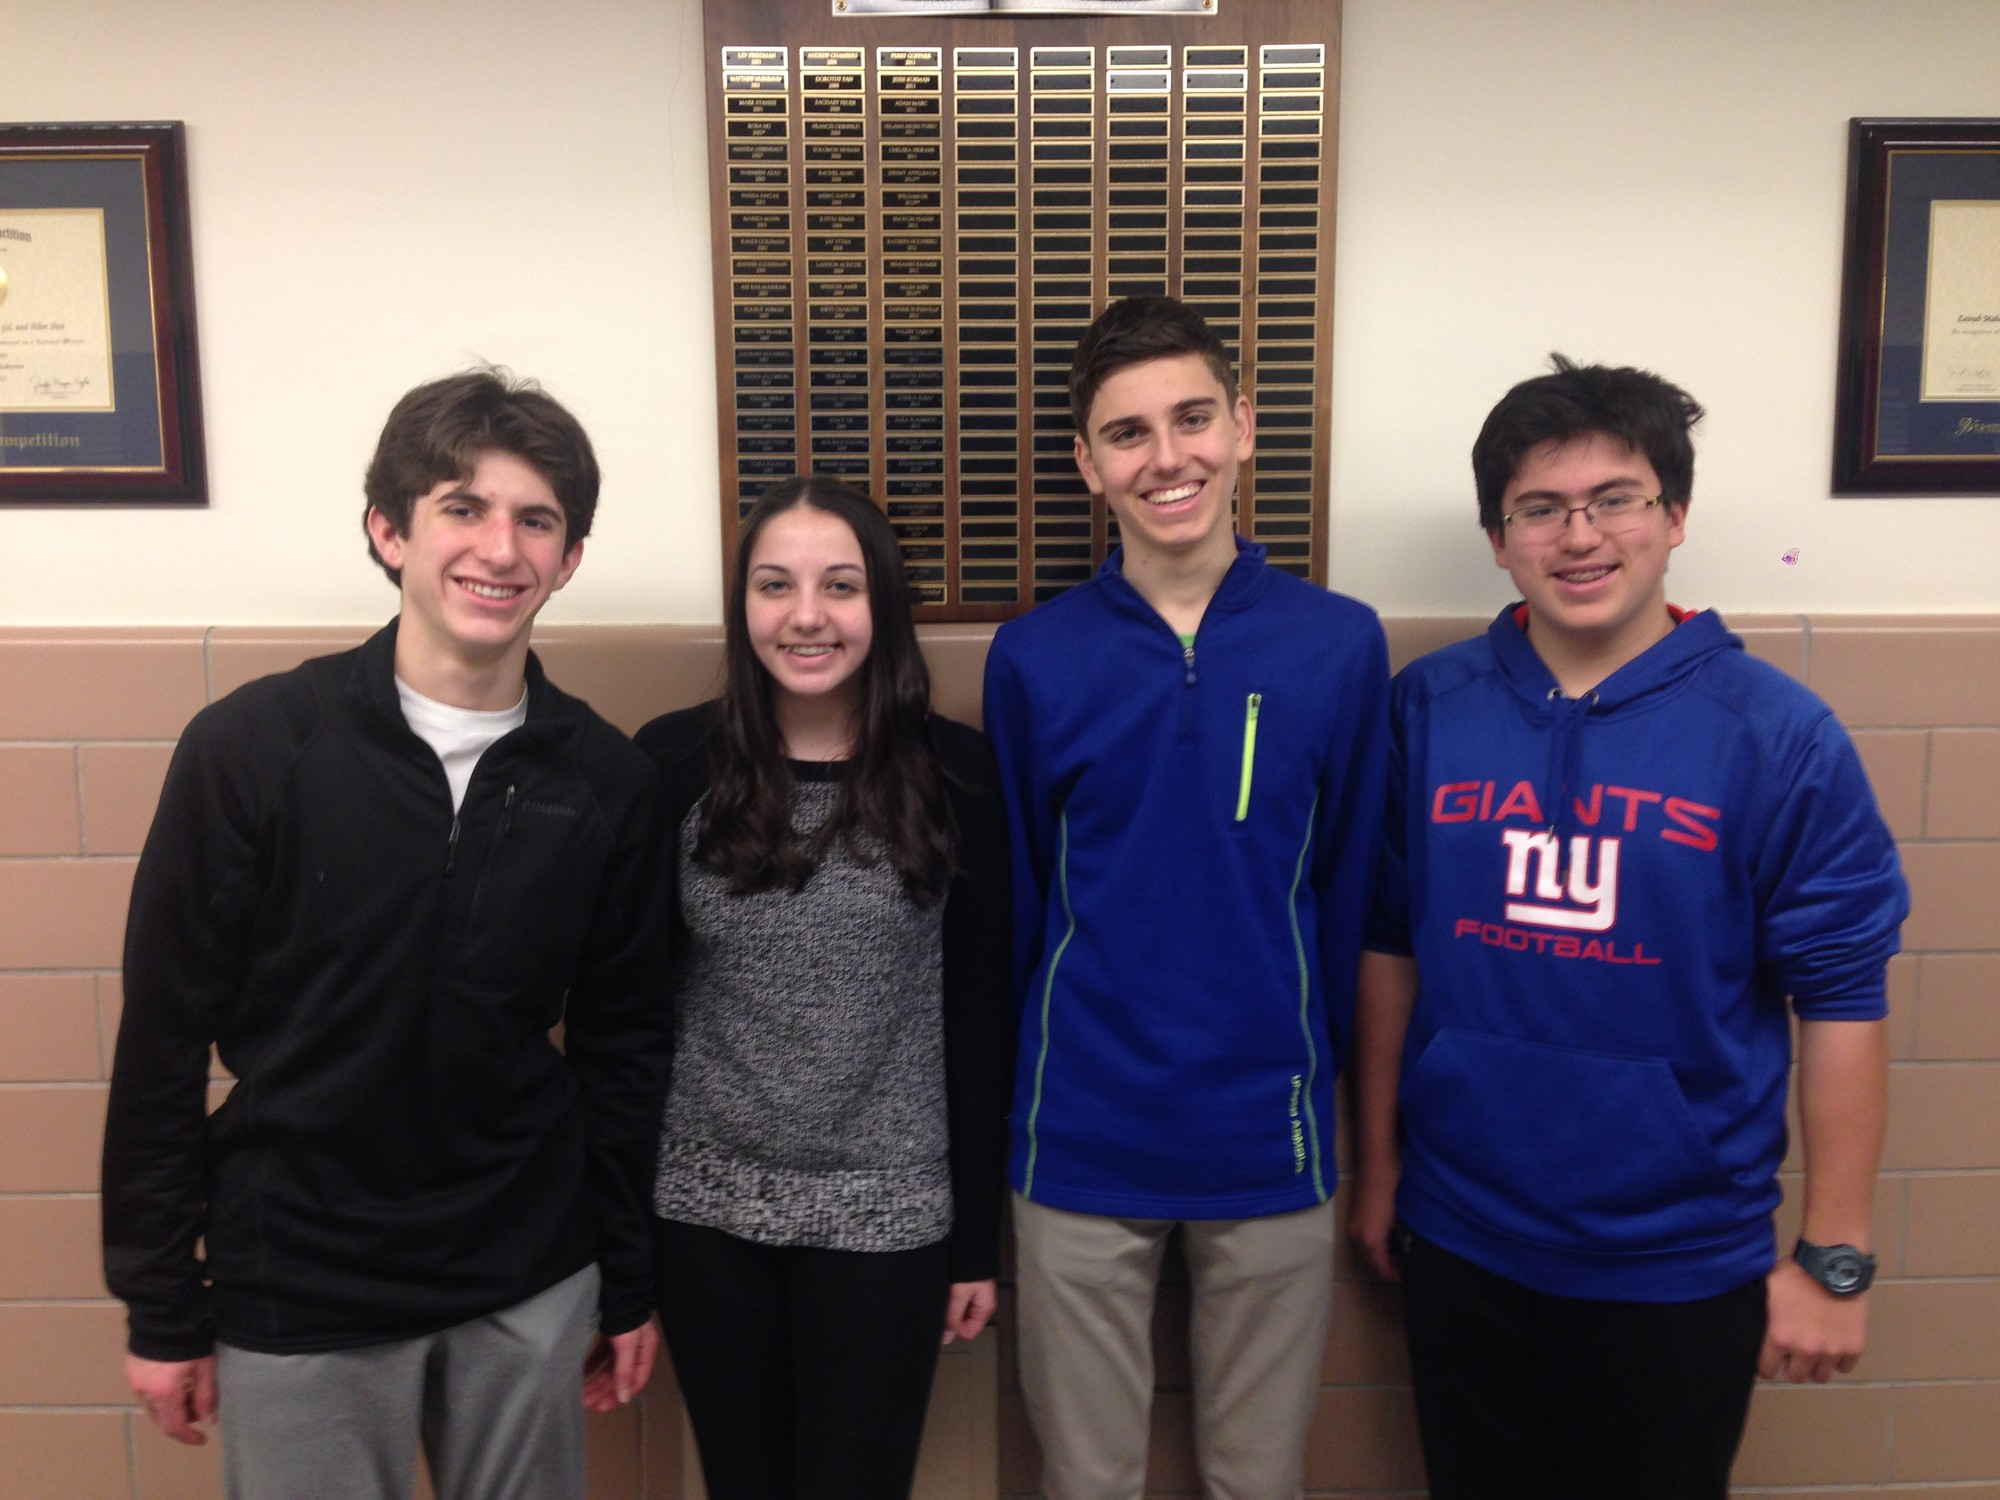 Ian Acriche, left, Natalie Aller, Samuel Bogdanov and Brandon Weiss, all Hewlett High freshmen, will compete in the nationals of the eCYBERMISSION science contest.